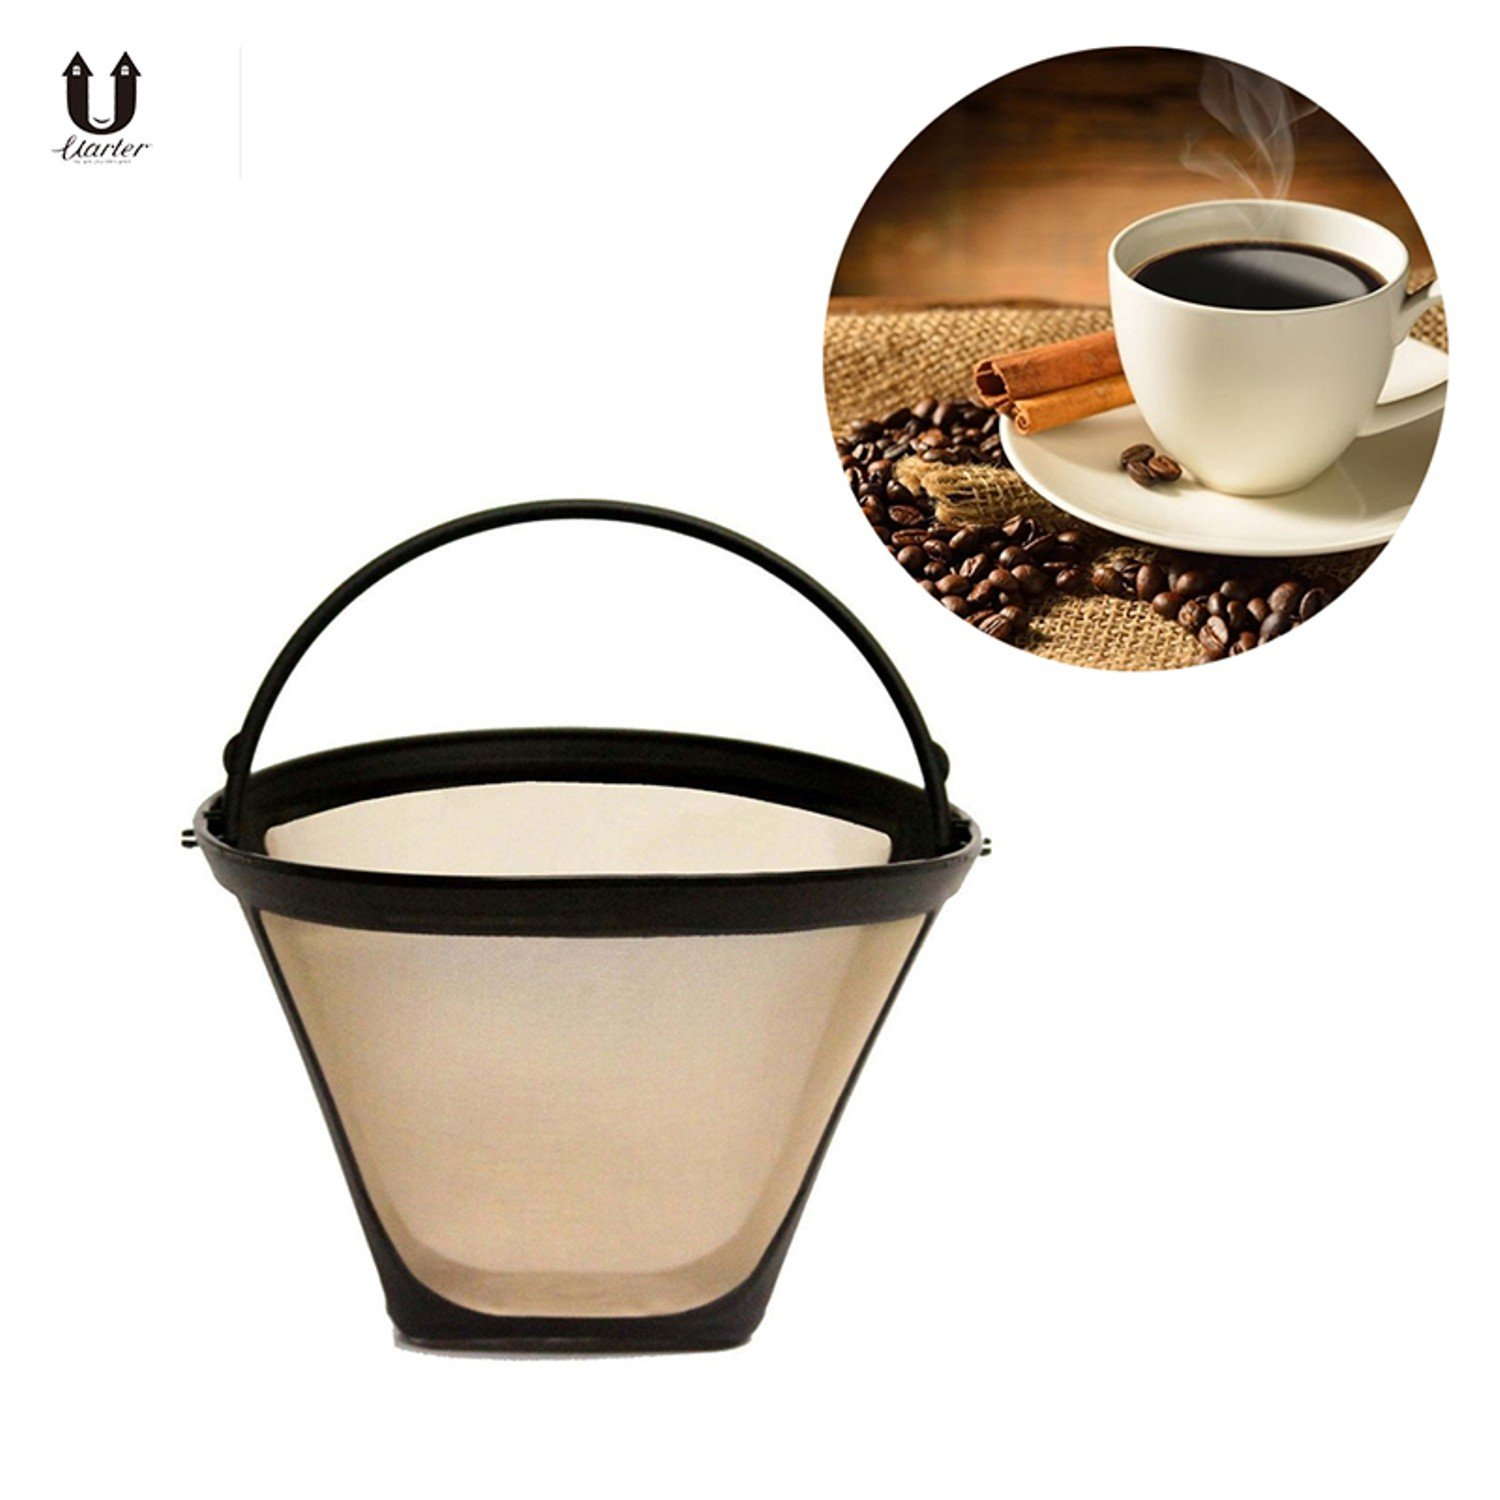 Reusable Stainless Steel Coffee Filter Baskets Permanent Cone-Style Handmade Coffee Filter Tool Kitchenware